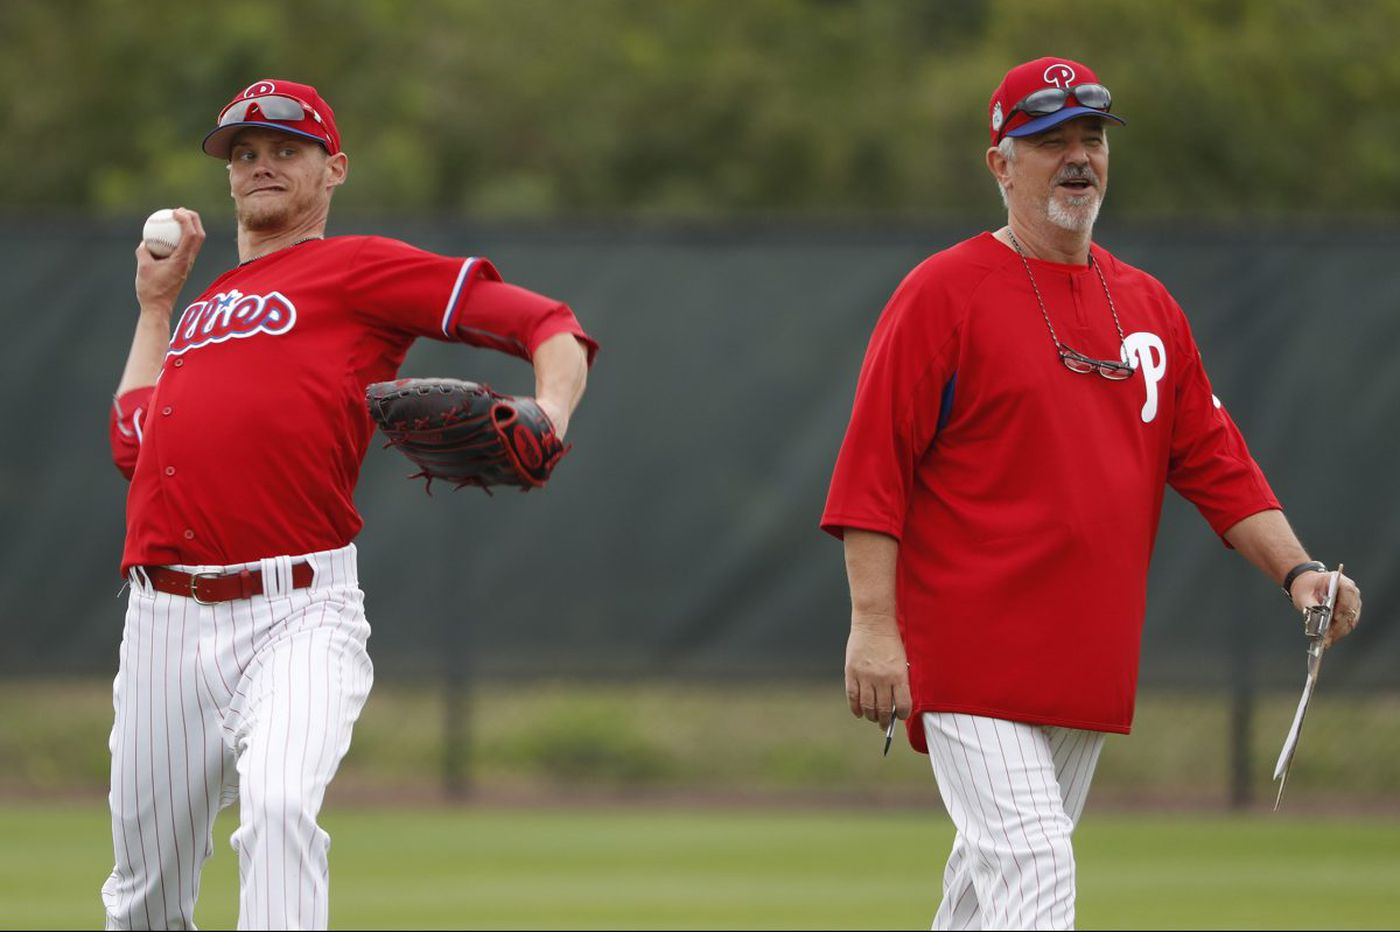 Phillies hire Rick Kranitz as pitching coach